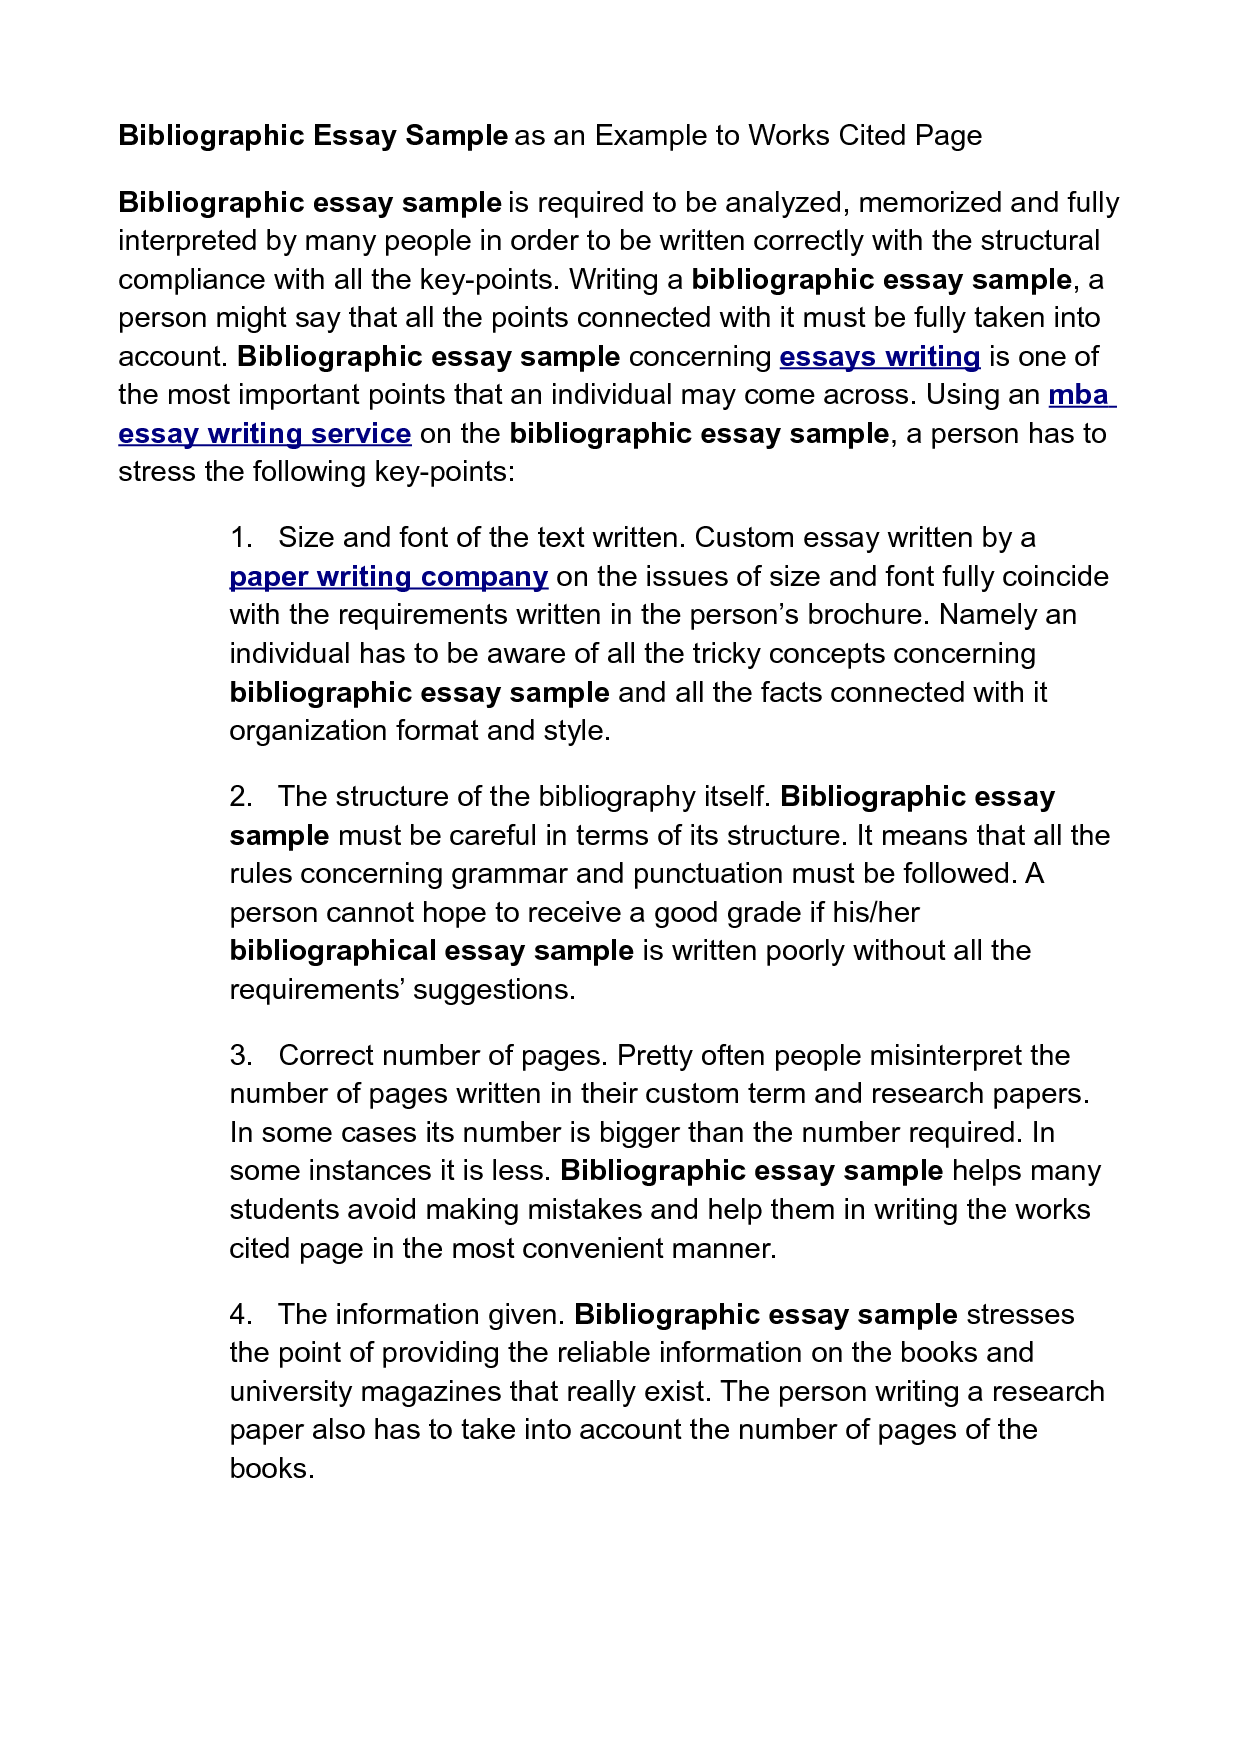 024 How To Cite In An Essay Sample Persuasive With Works Cited Example Of Mla L Awful A Paper Two First Authors From Website Apa Evidence Examples Full